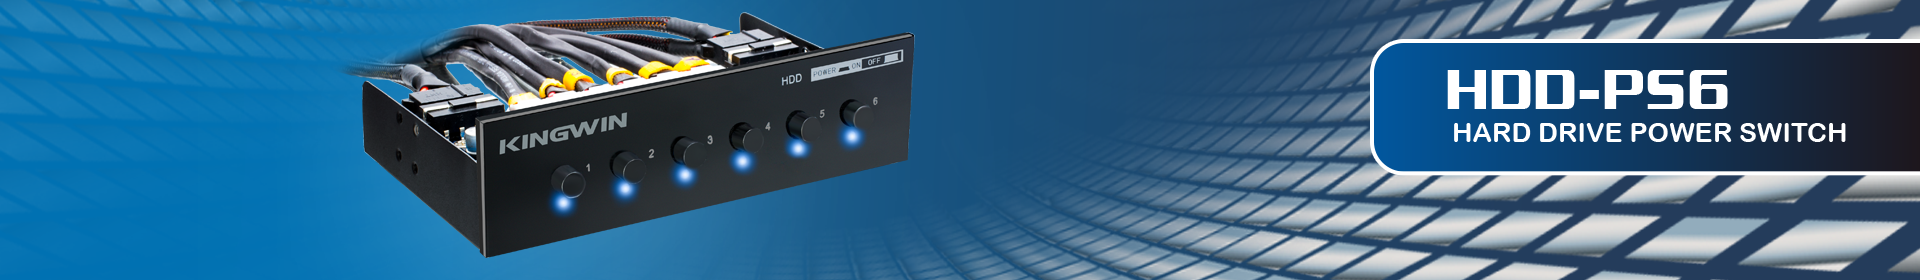 HDD-PS6_Product_Header2